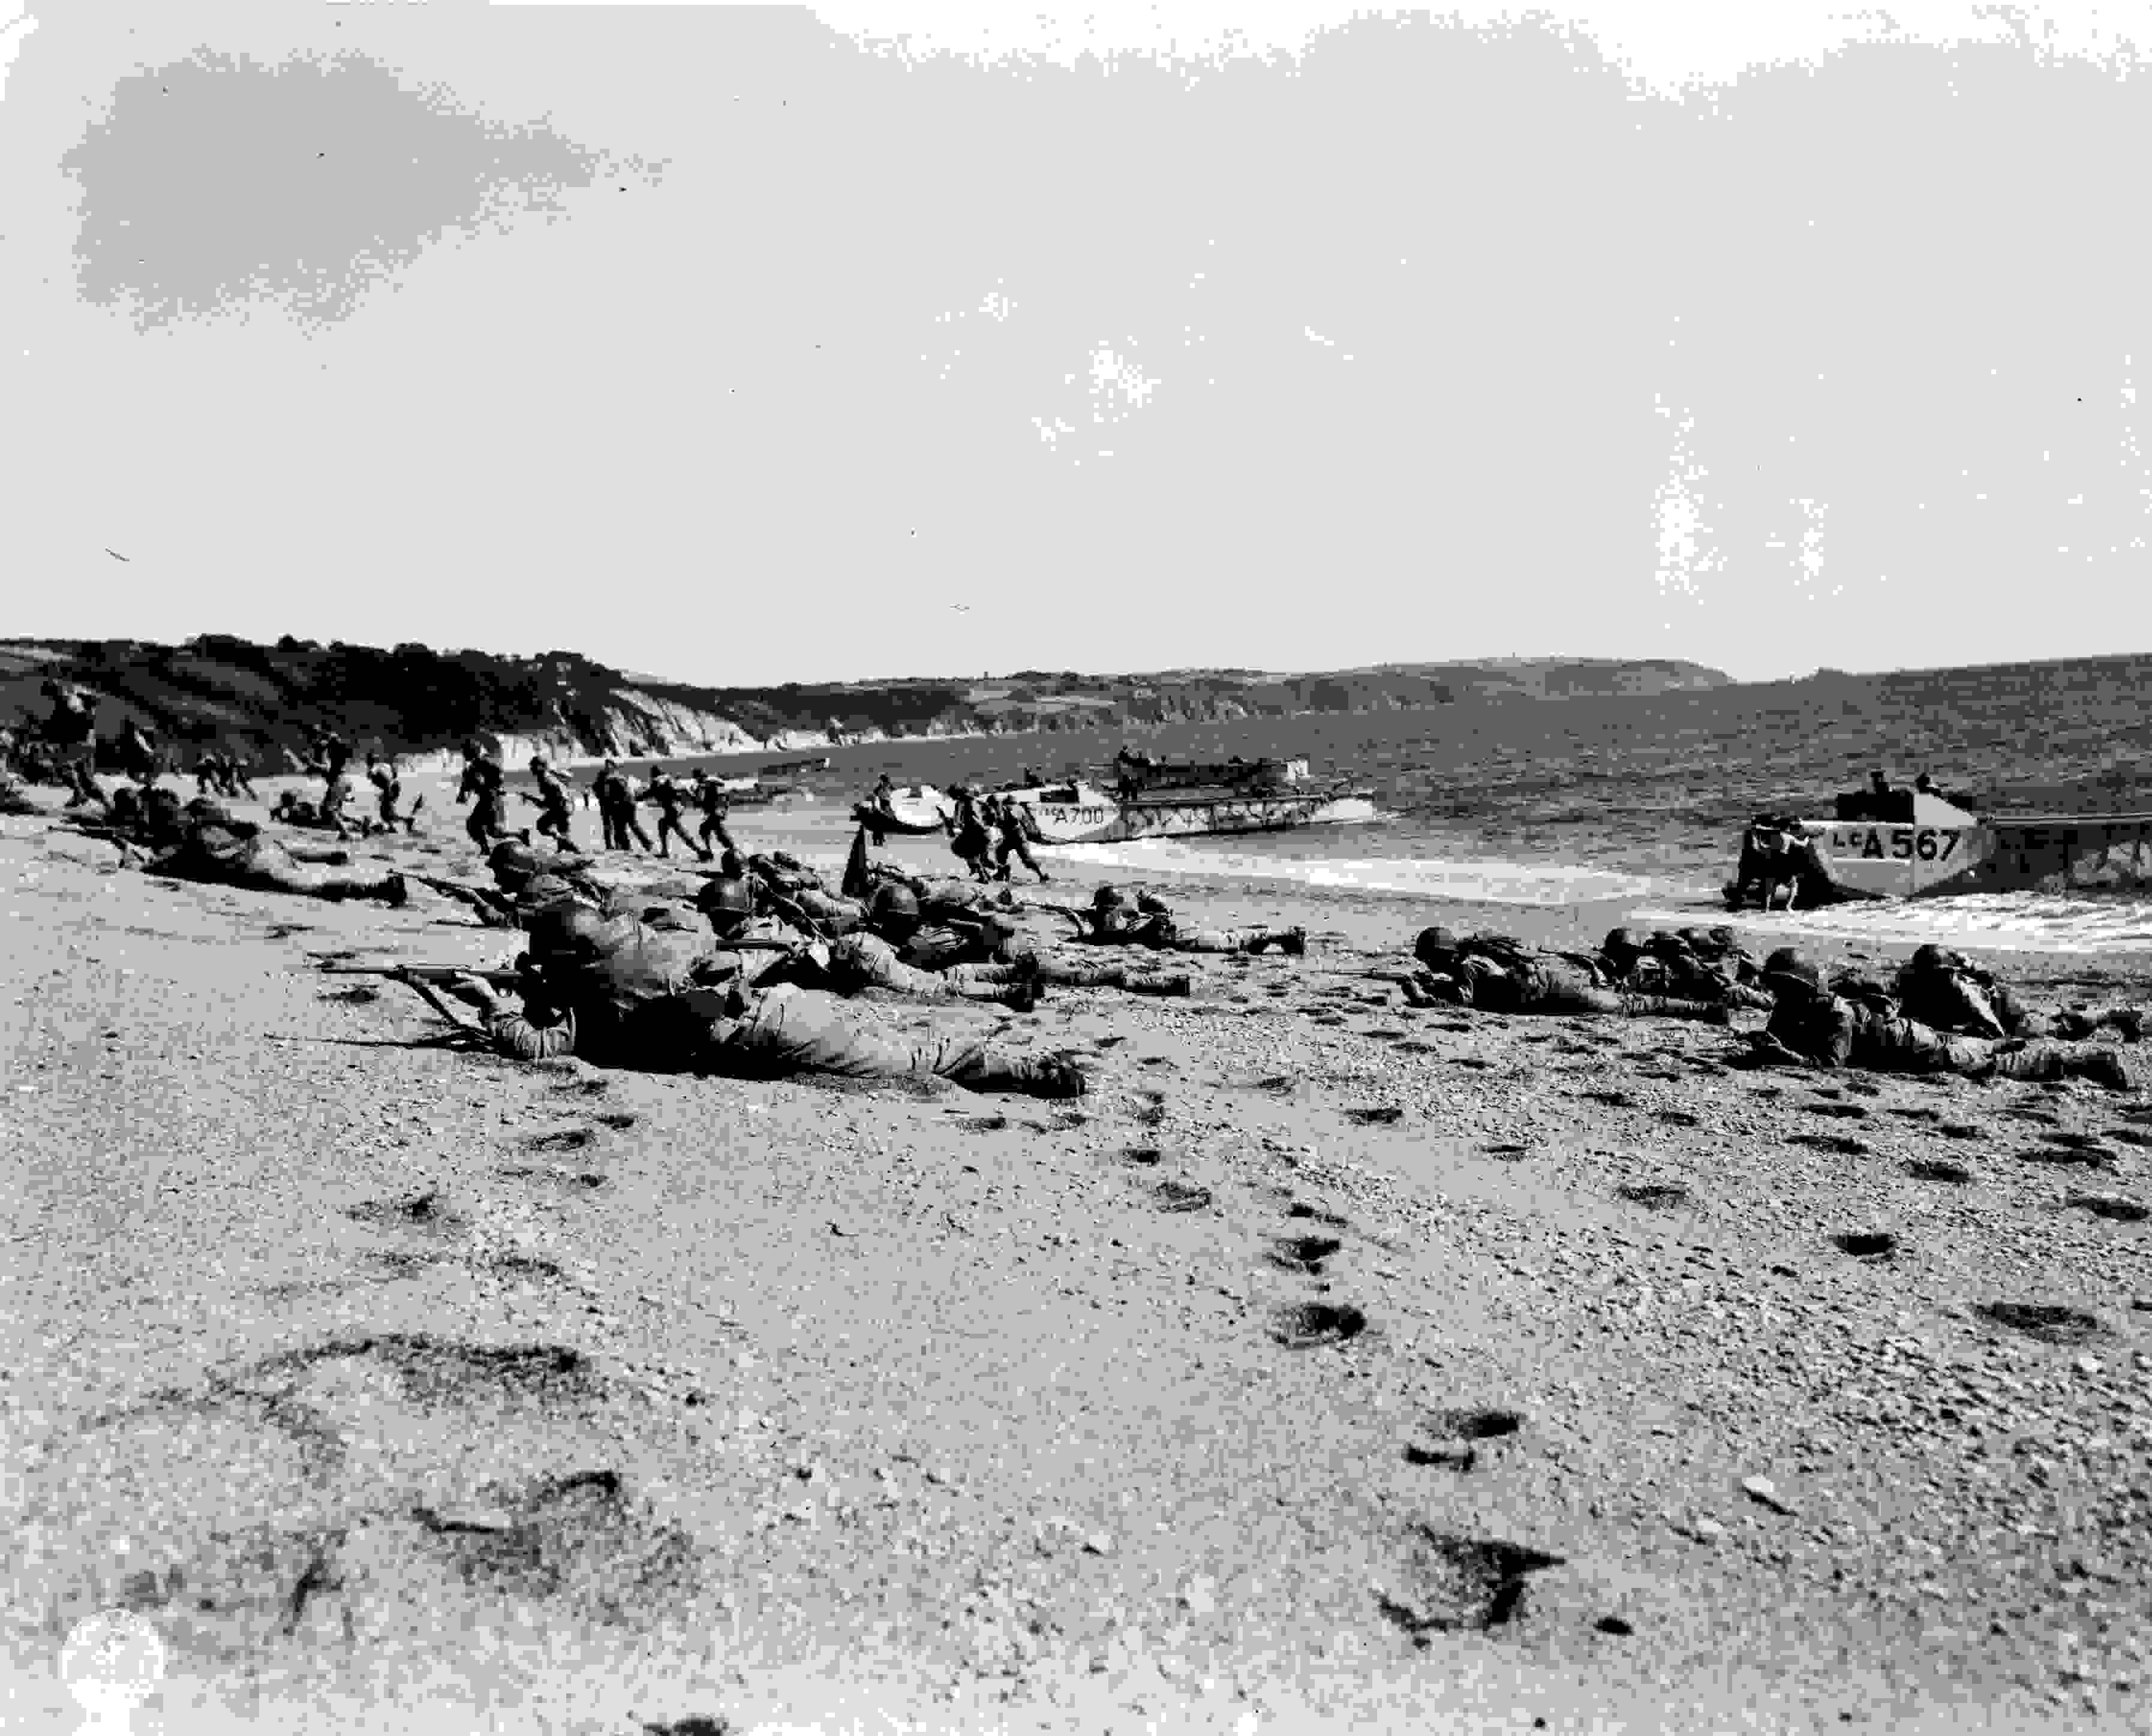 soldiers_on_the_beach_during_d_day_training_exercise_at_slapton_sands_in_1944